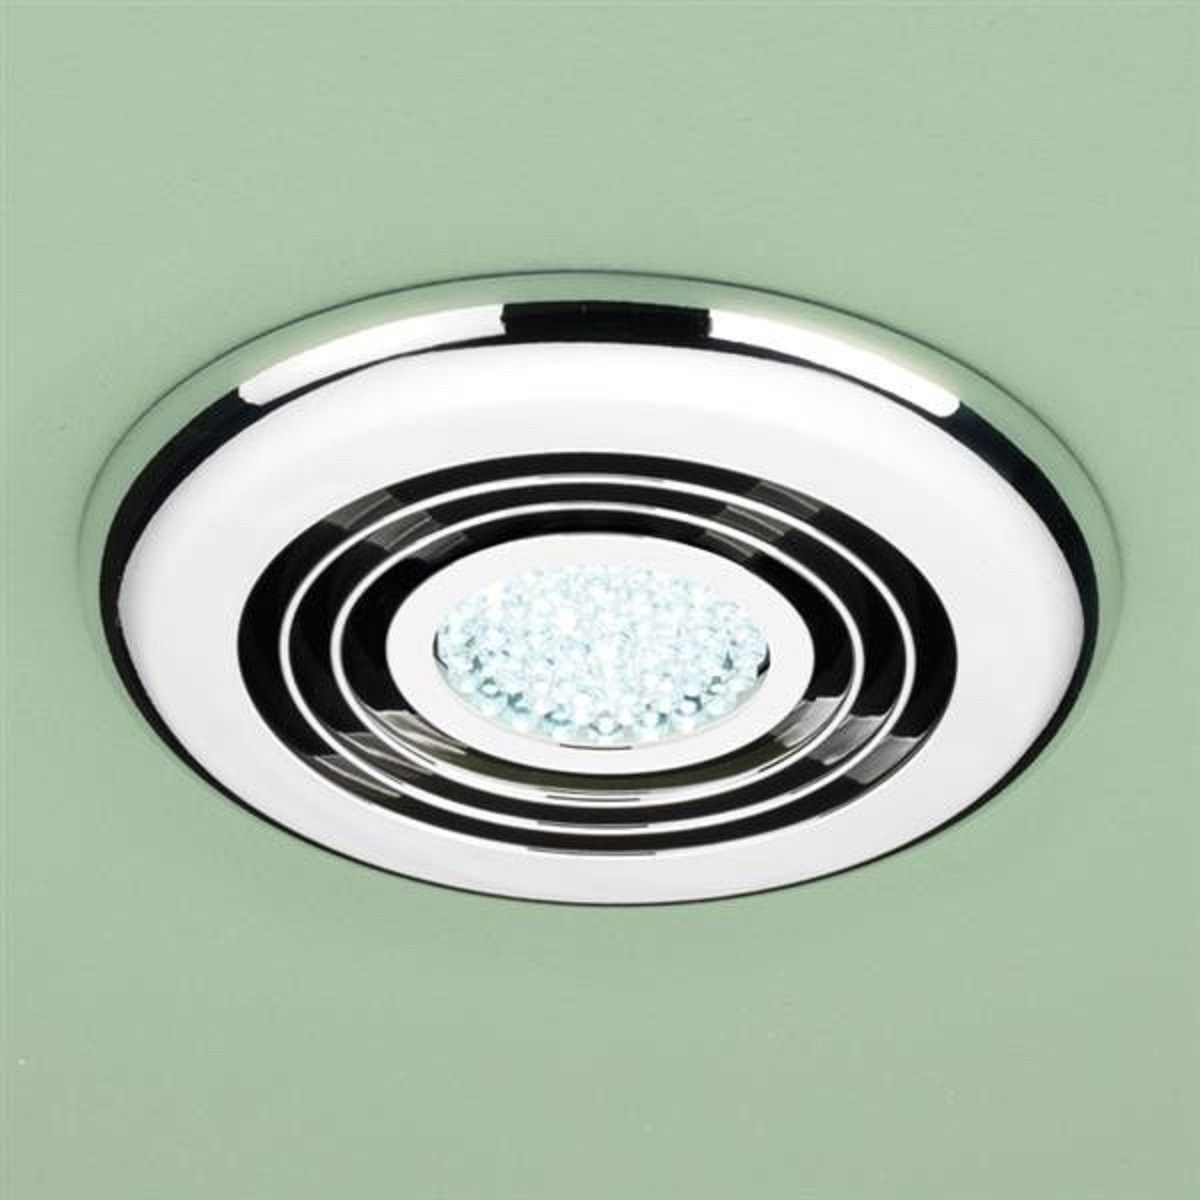 New led bathroom lights from hib hib - Bathroom Extractor Fan With Led Light